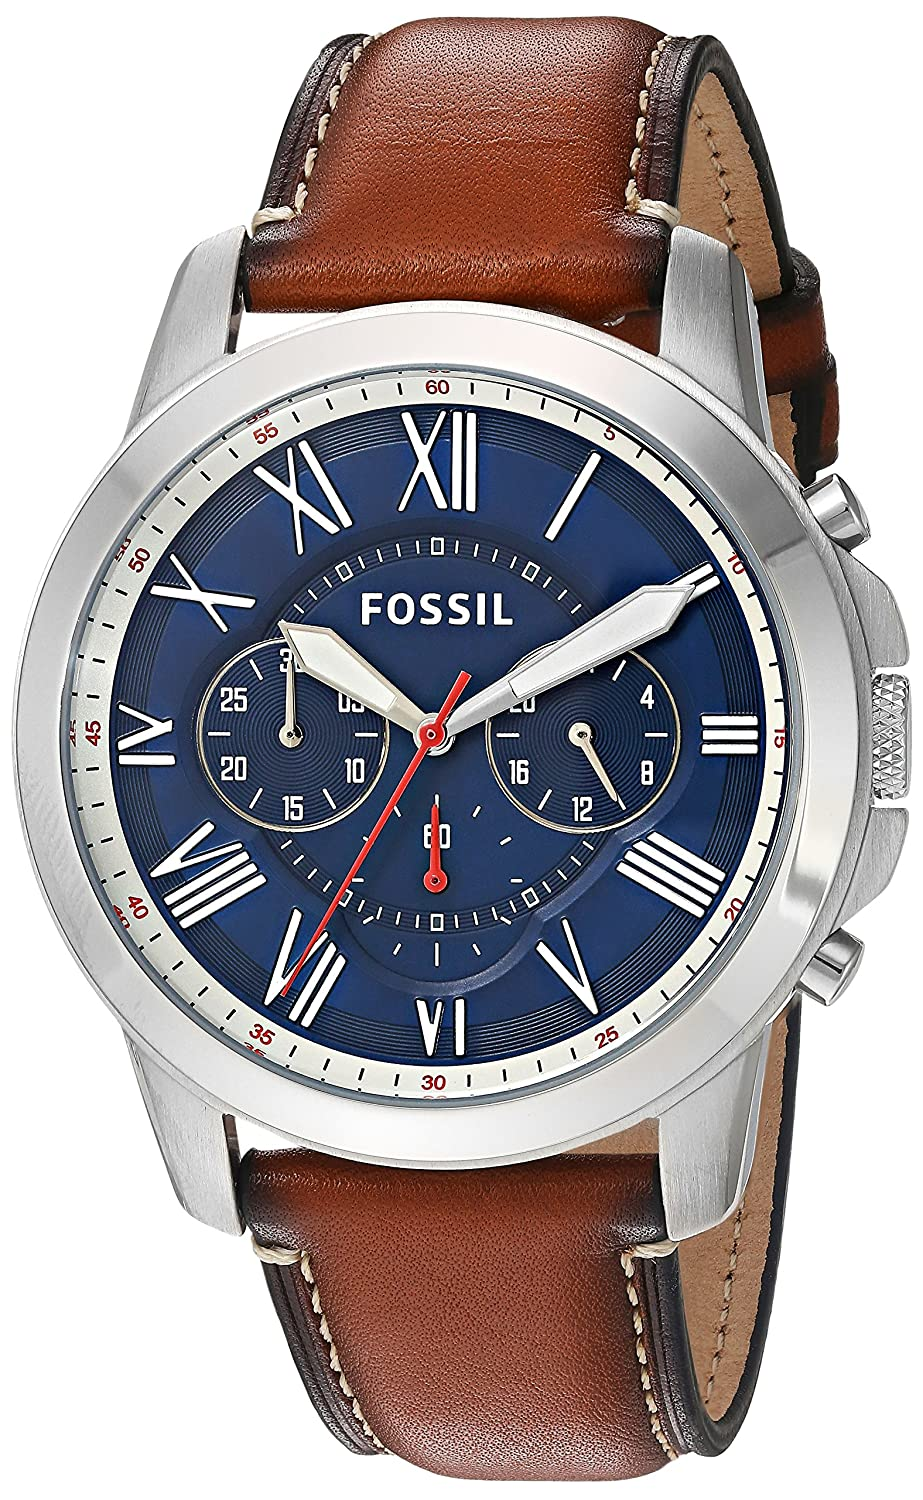 289b11e53c56a Amazon.com  Fossil Men s Grant Quartz Stainless Steel and Leather  Chronograph Watch